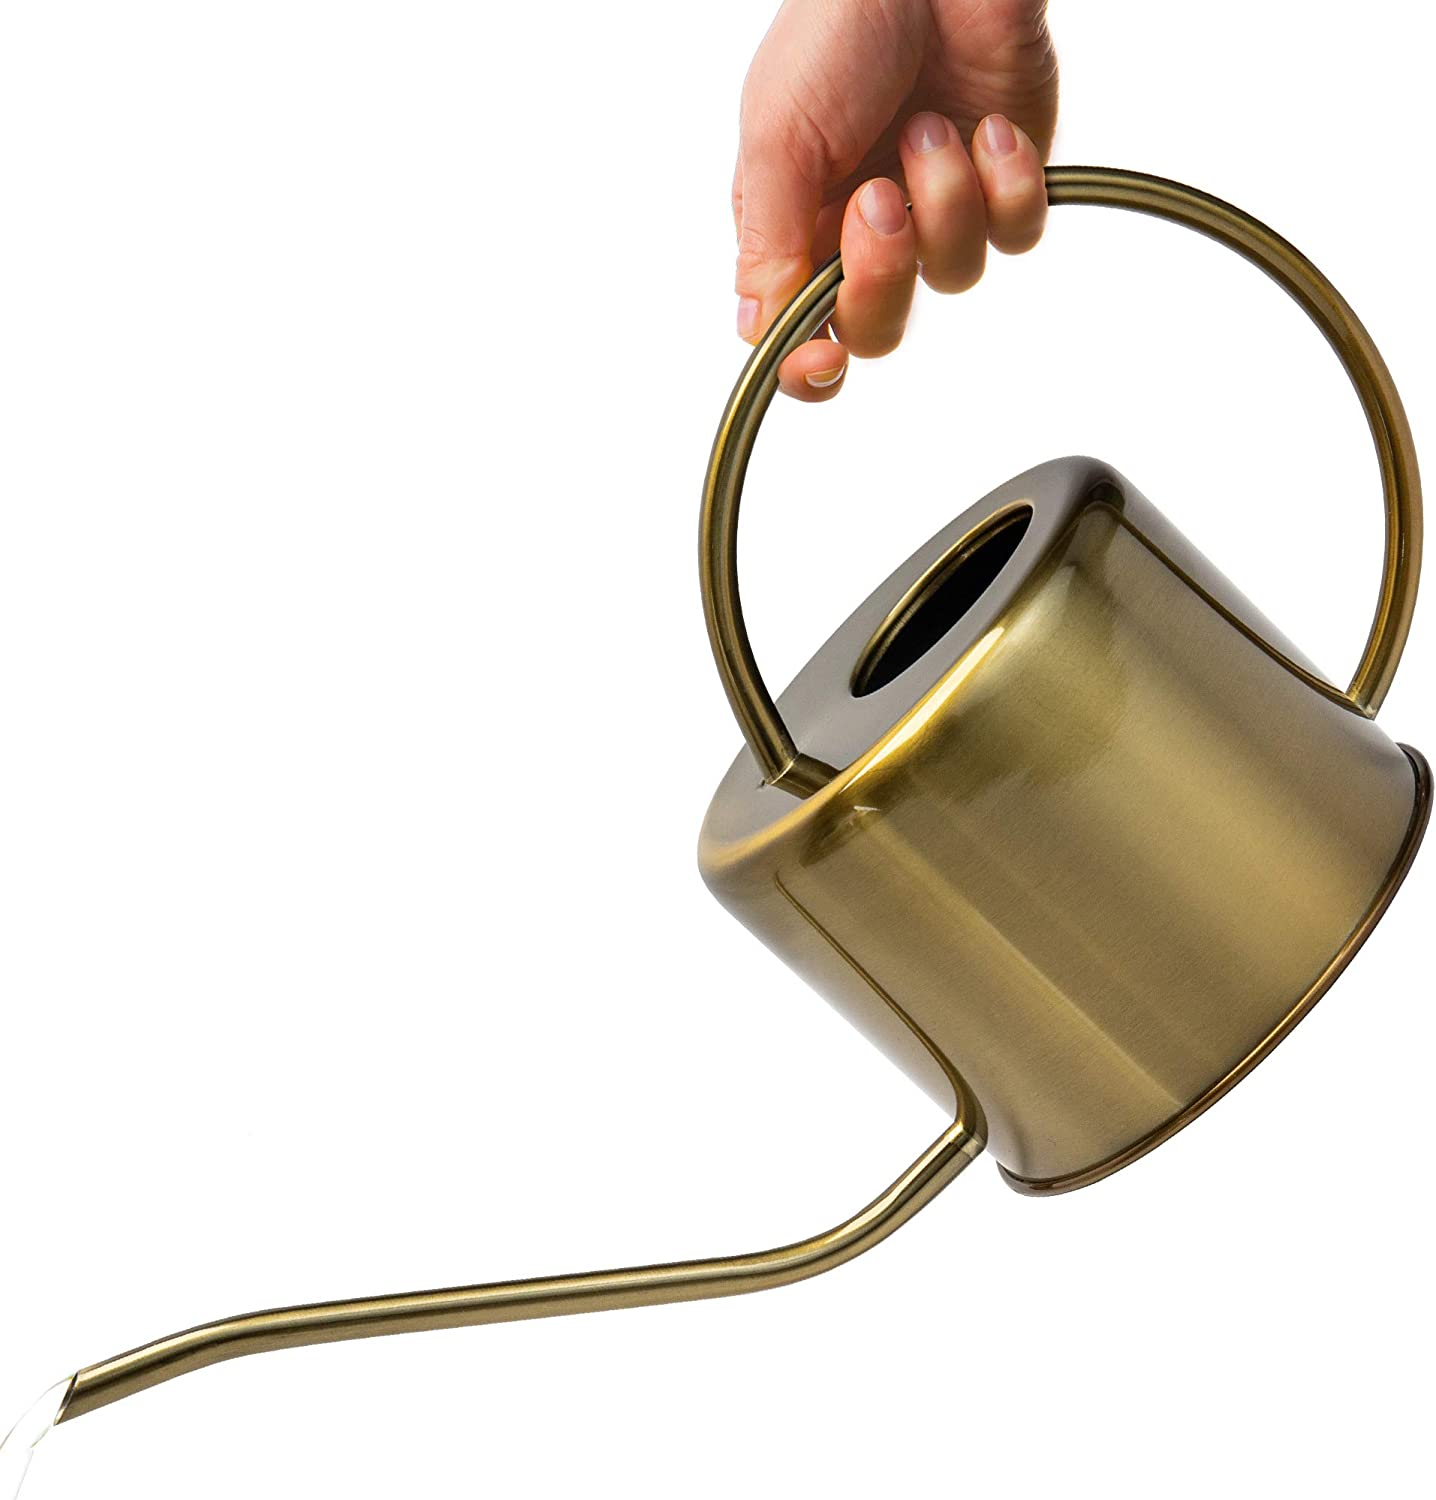 KIBAGA Decorative Gold Colored 40oz Watering Can - Easy Pour Gooseneck Spout for Fast and Easy Indoor Plant Watering